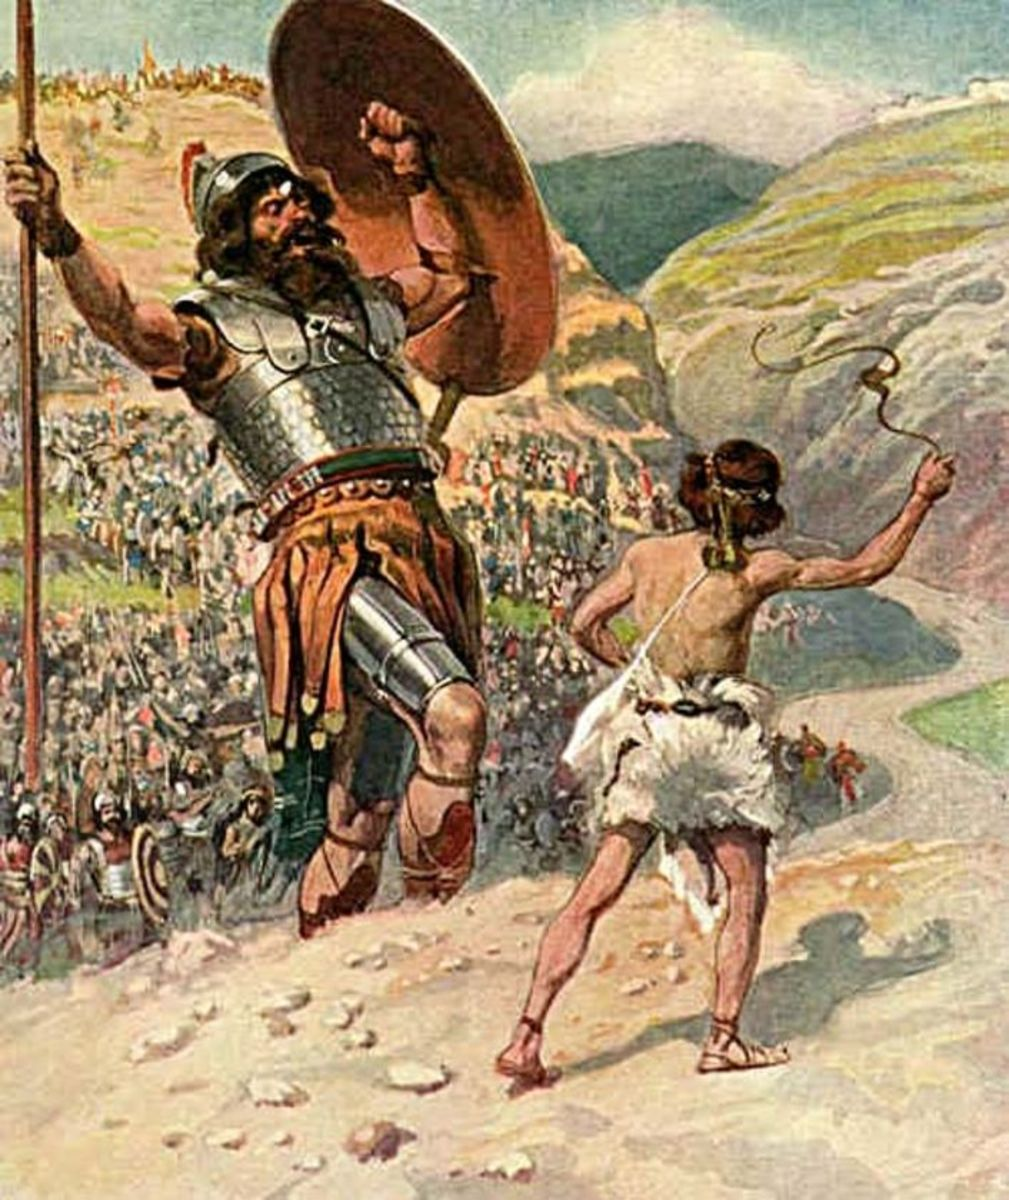 the biblical story of goliath and david from literature perspective Jack zavada is the author of 11 books on christianity, including hope for hurting singles he focuses on the bible, theology, and religious history updated september 10, 2018 king david was a man of contrasts at times he was single-mindedly devoted to god, yet at other times he failed miserably.